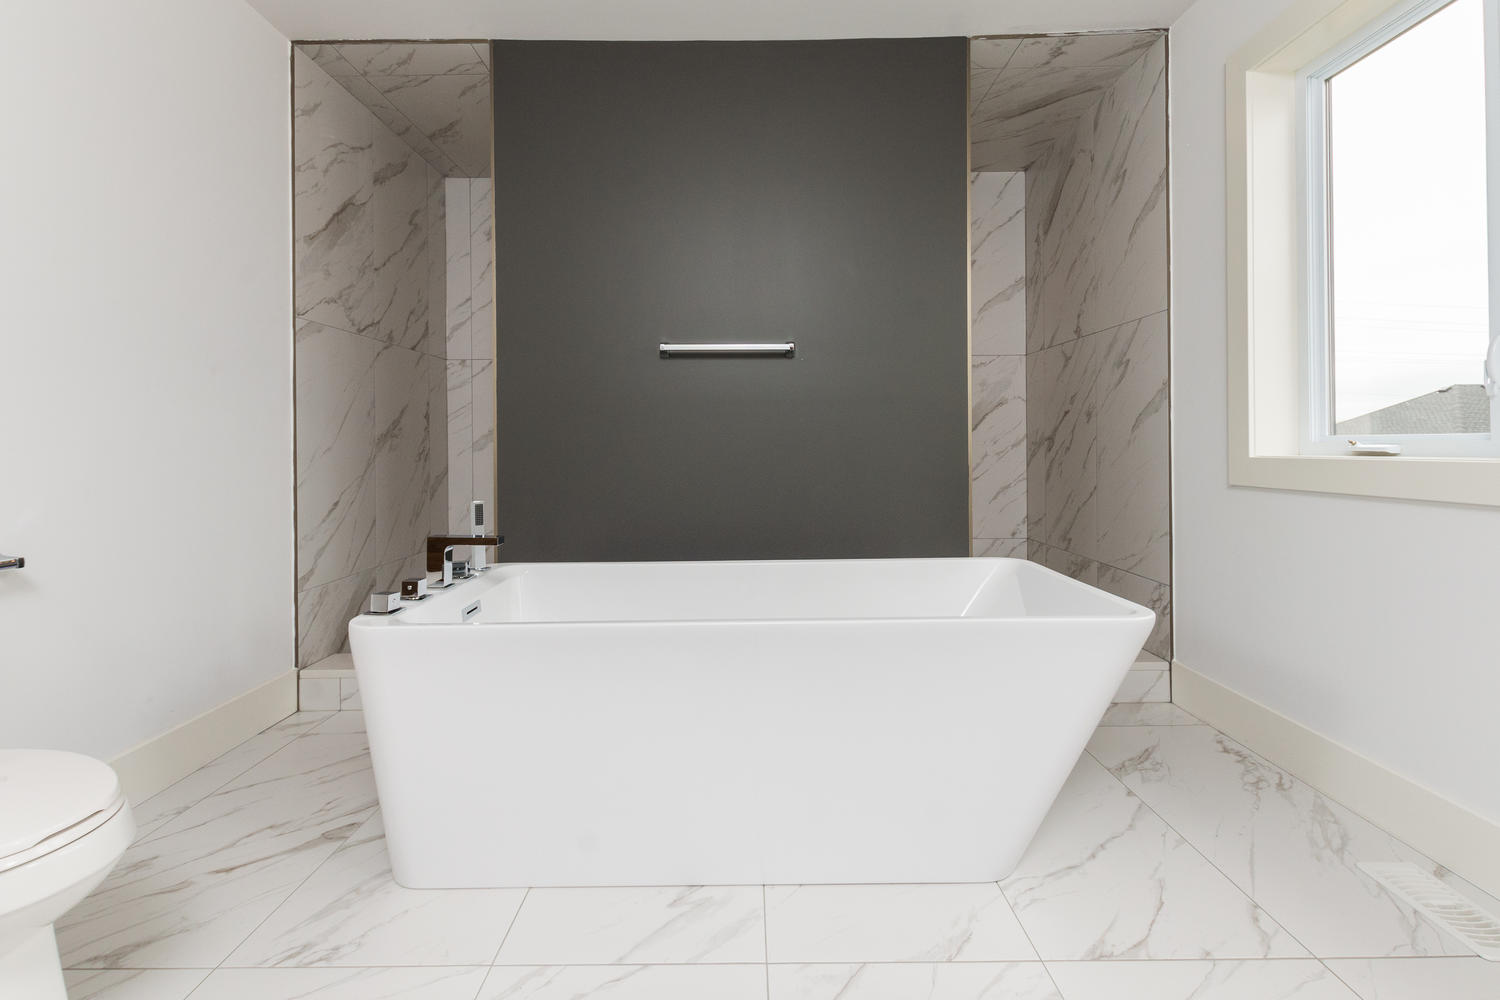 Royal Premier Homes - Eco Friendly Home Builders London - Frontier - Bath Tub